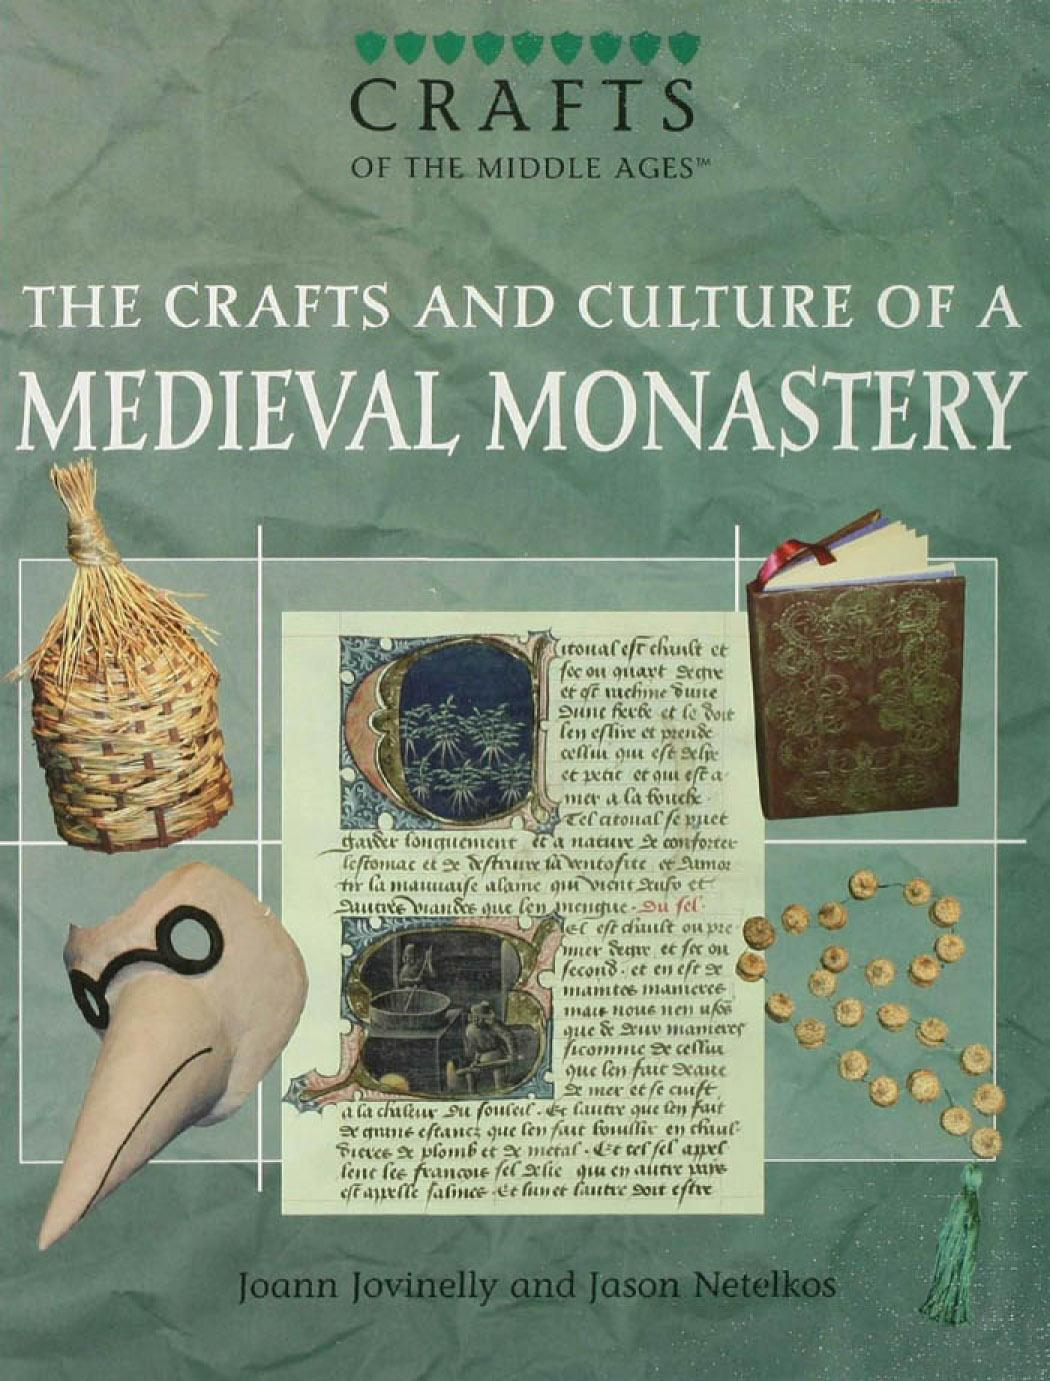 The Crafts and Culture of a Medieval Monastery